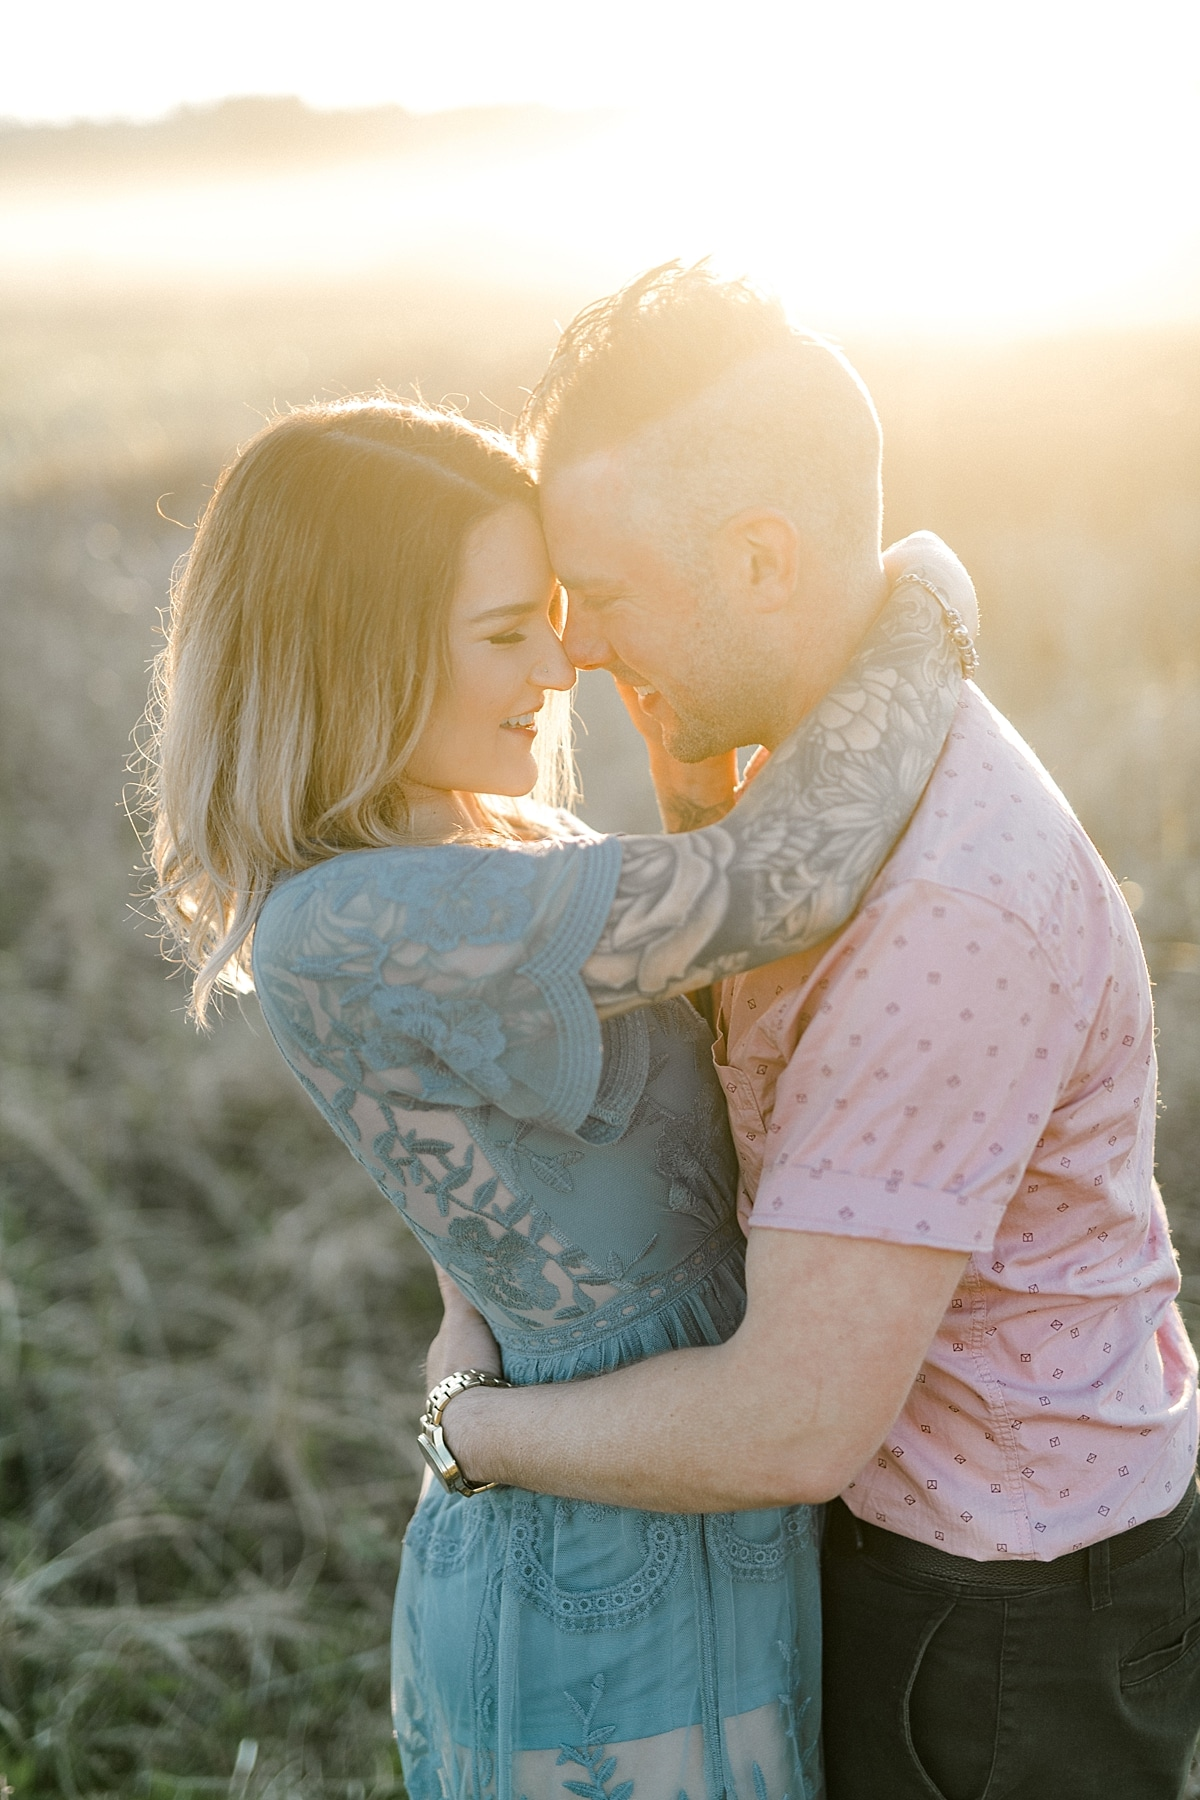 couple hugging nose to nose with golden sunshine causing lens flare behind them